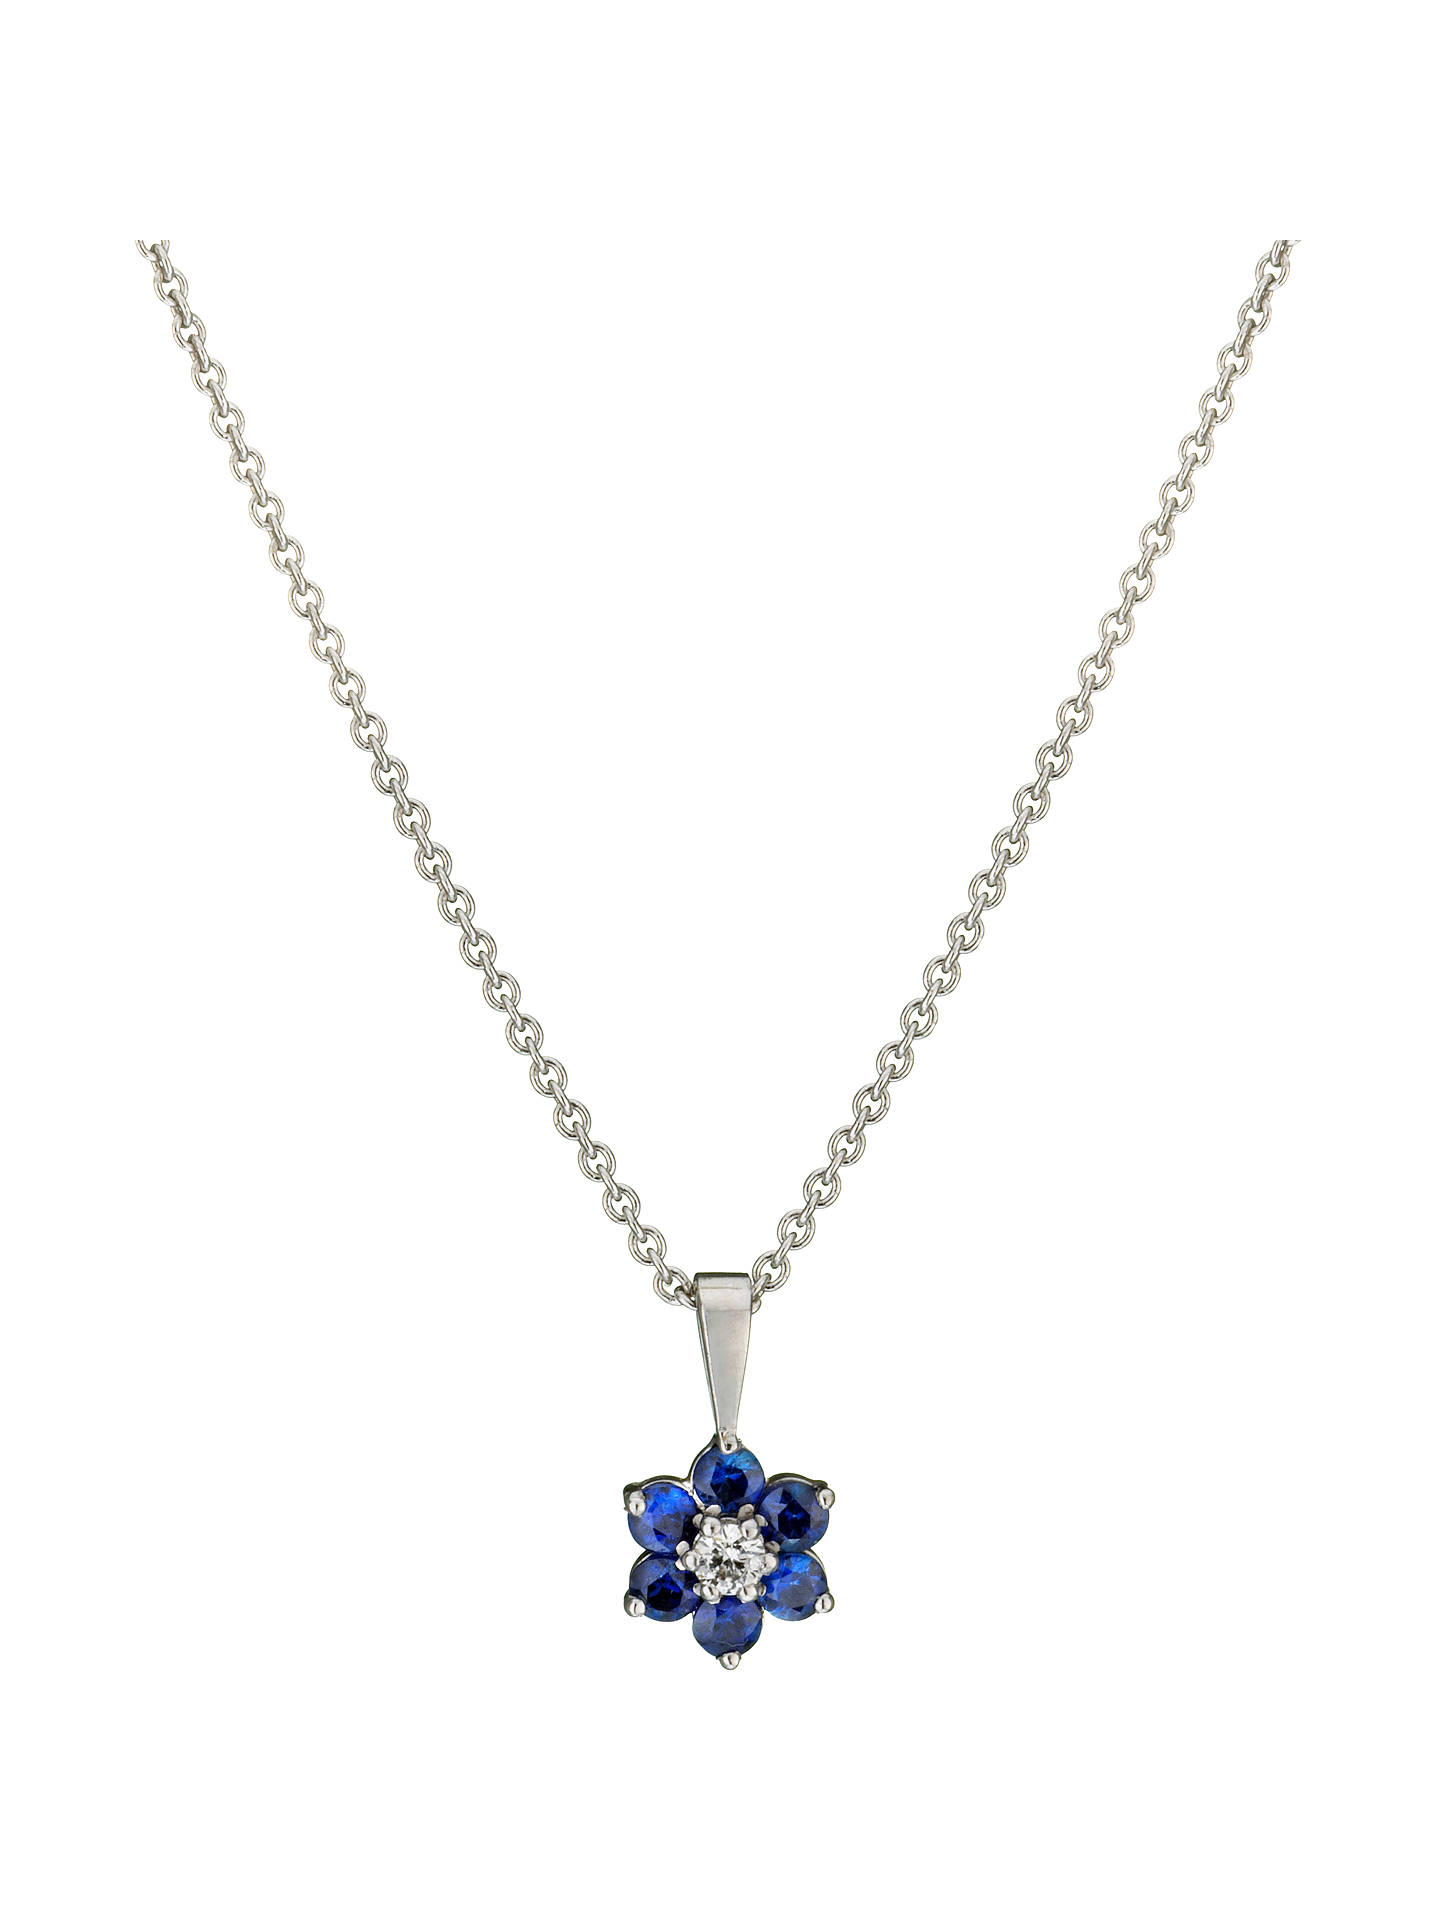 1c65df73287821 ... Buy E.W Adams 18ct White Gold Diamond and Blue Sapphire Flower Pendant  Necklace Online at johnlewis ...